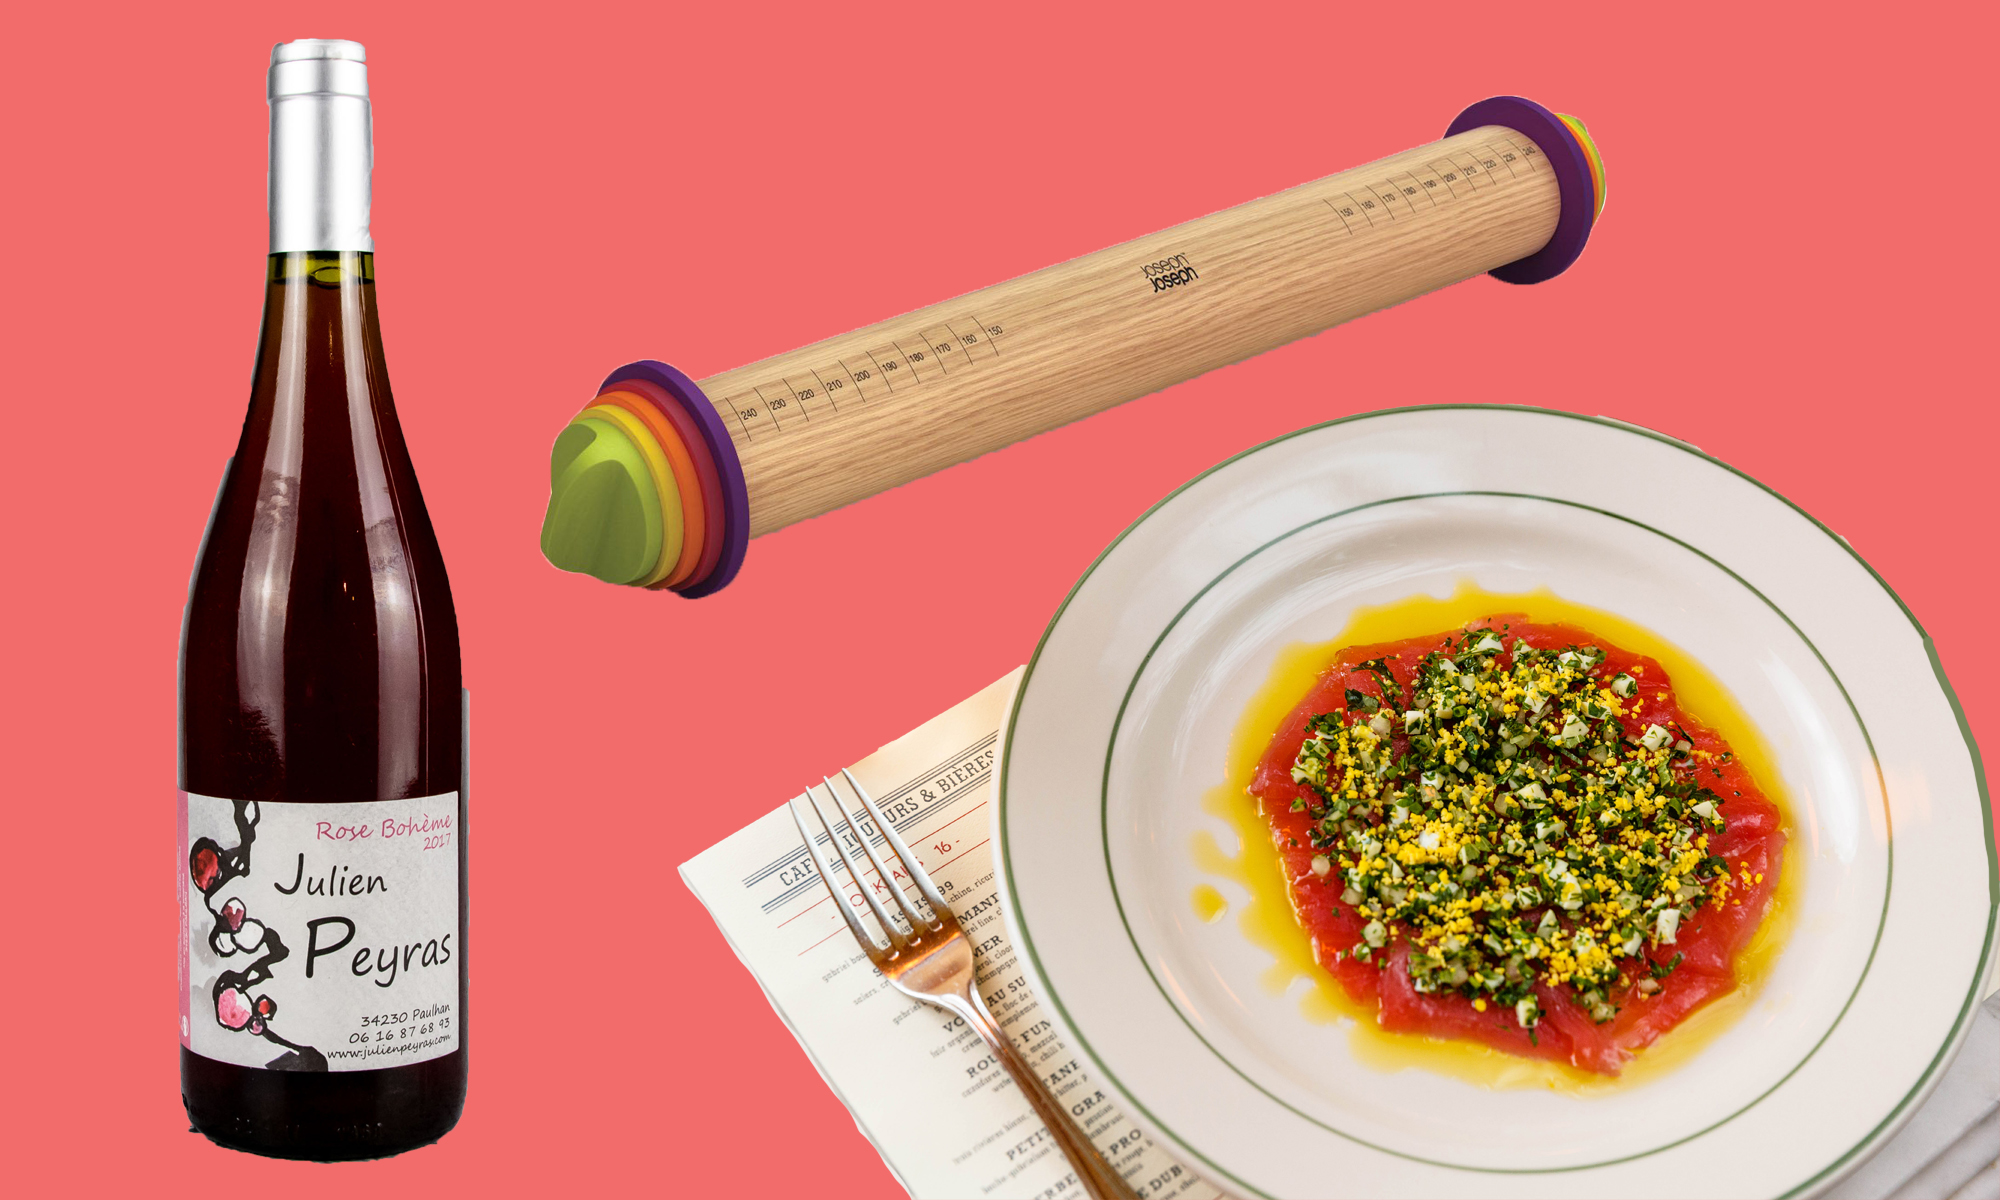 Bottle of natural rosé wine, a rolling pin, and a plate of food from Pastis, all on a vibrant coral pink background